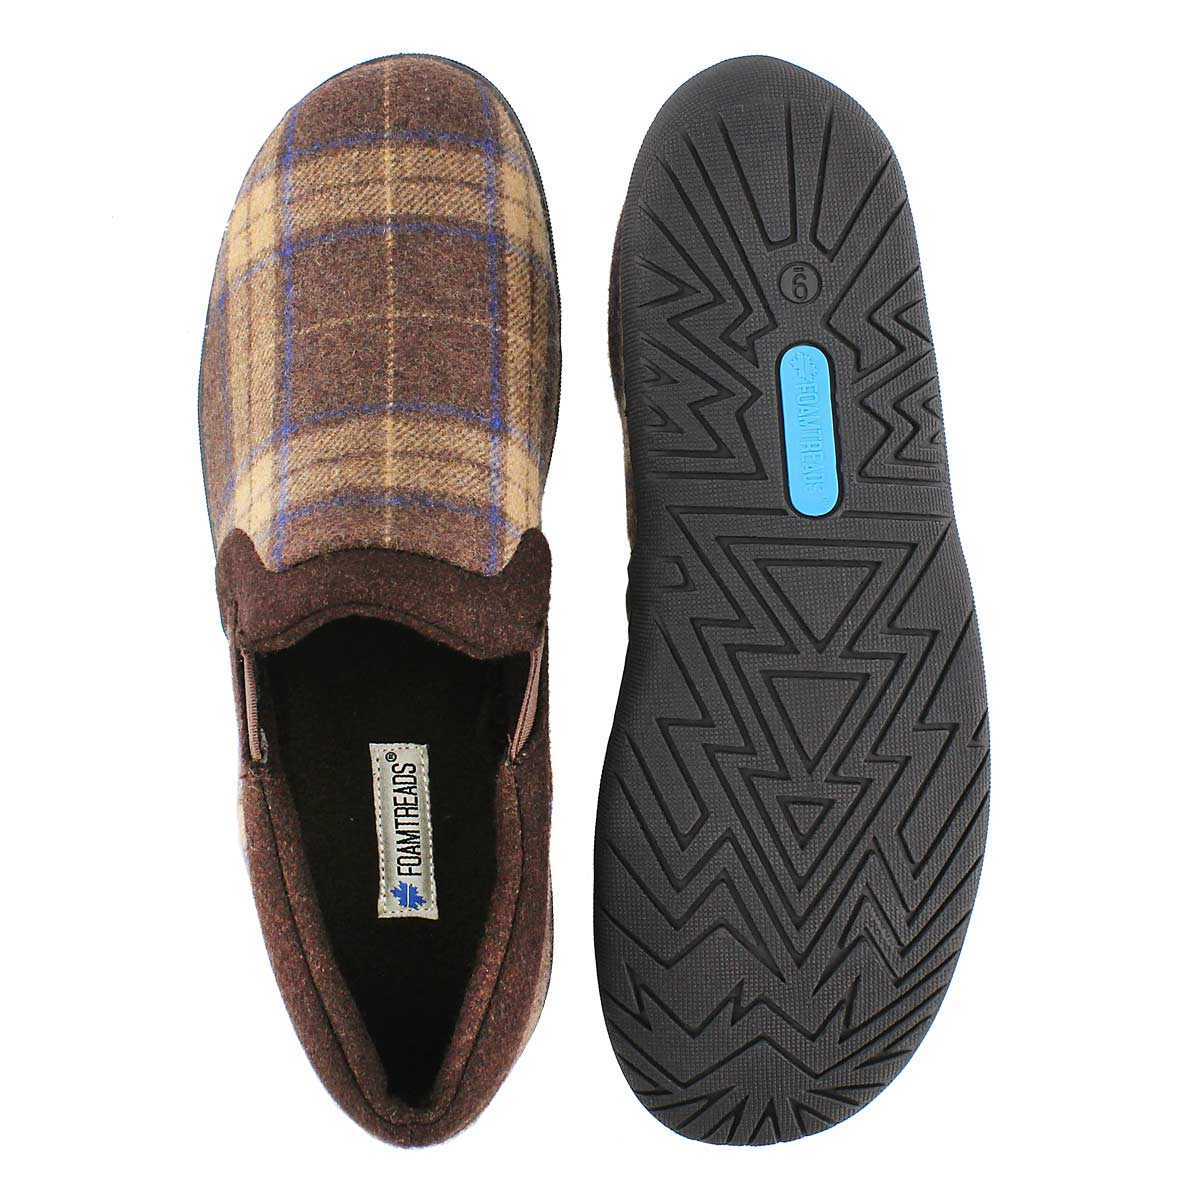 Mns Beaumont choc closed back slipper